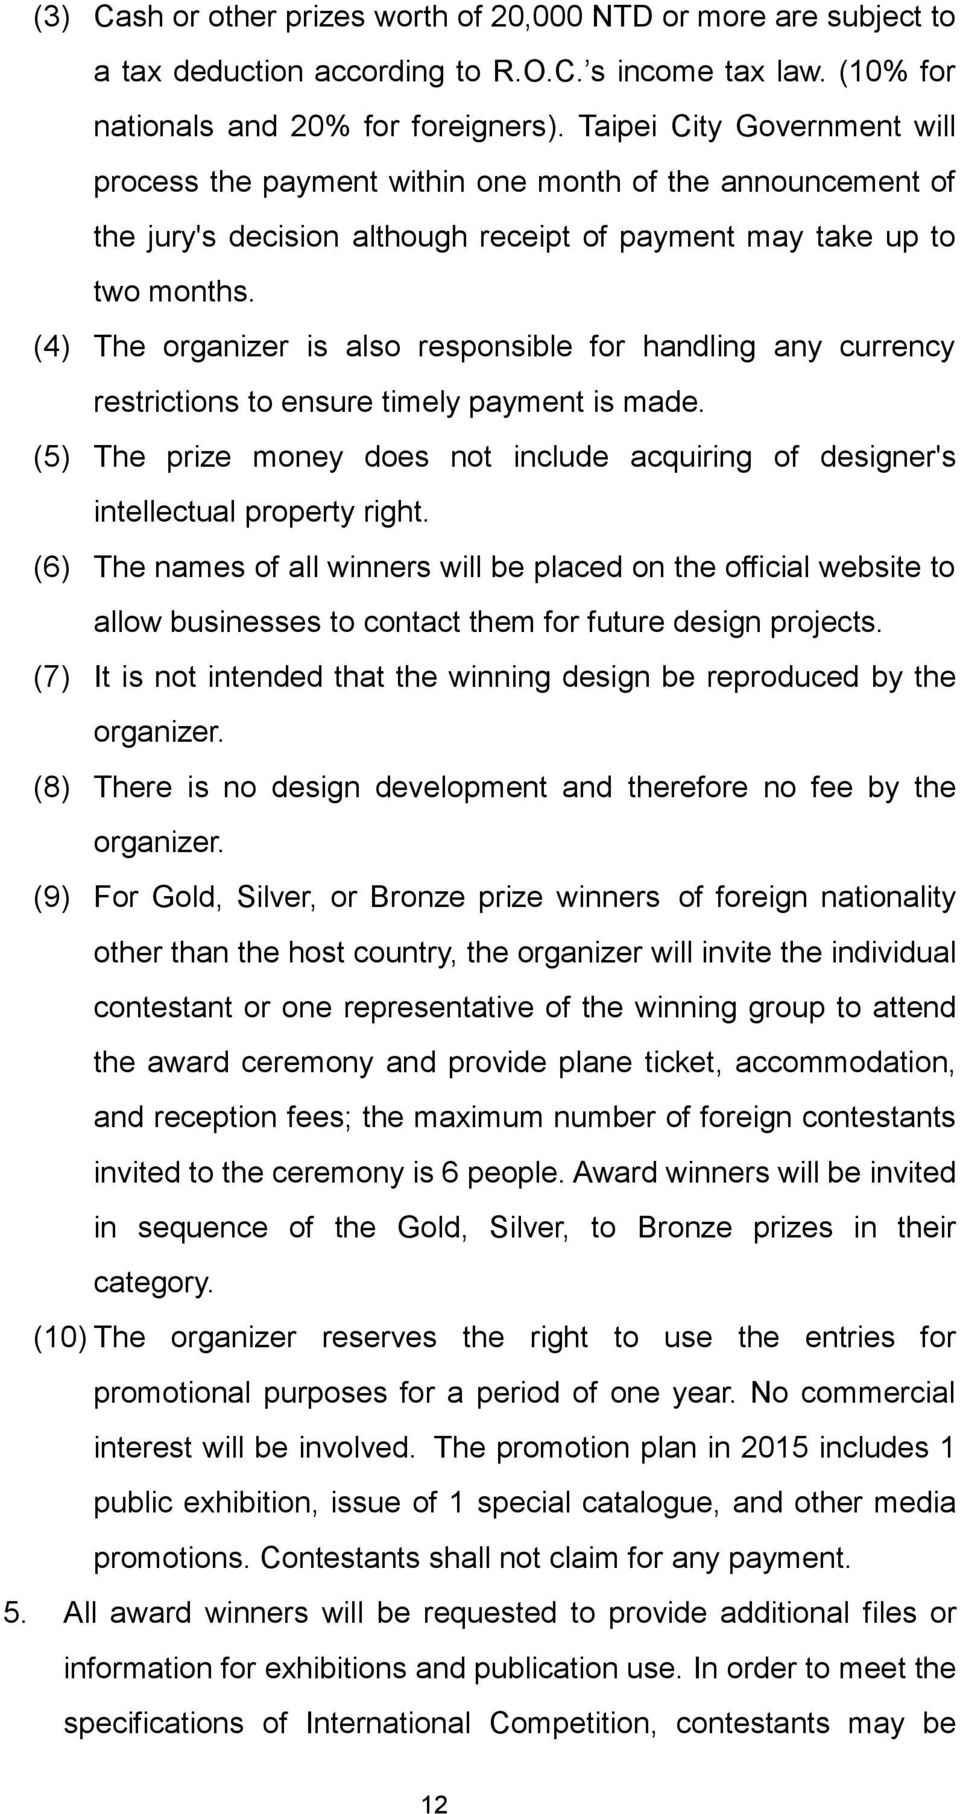 (4) The organizer is also responsible for handling any currency restrictions to ensure timely payment is made. (5) The prize money does not include acquiring of designer's intellectual property right.